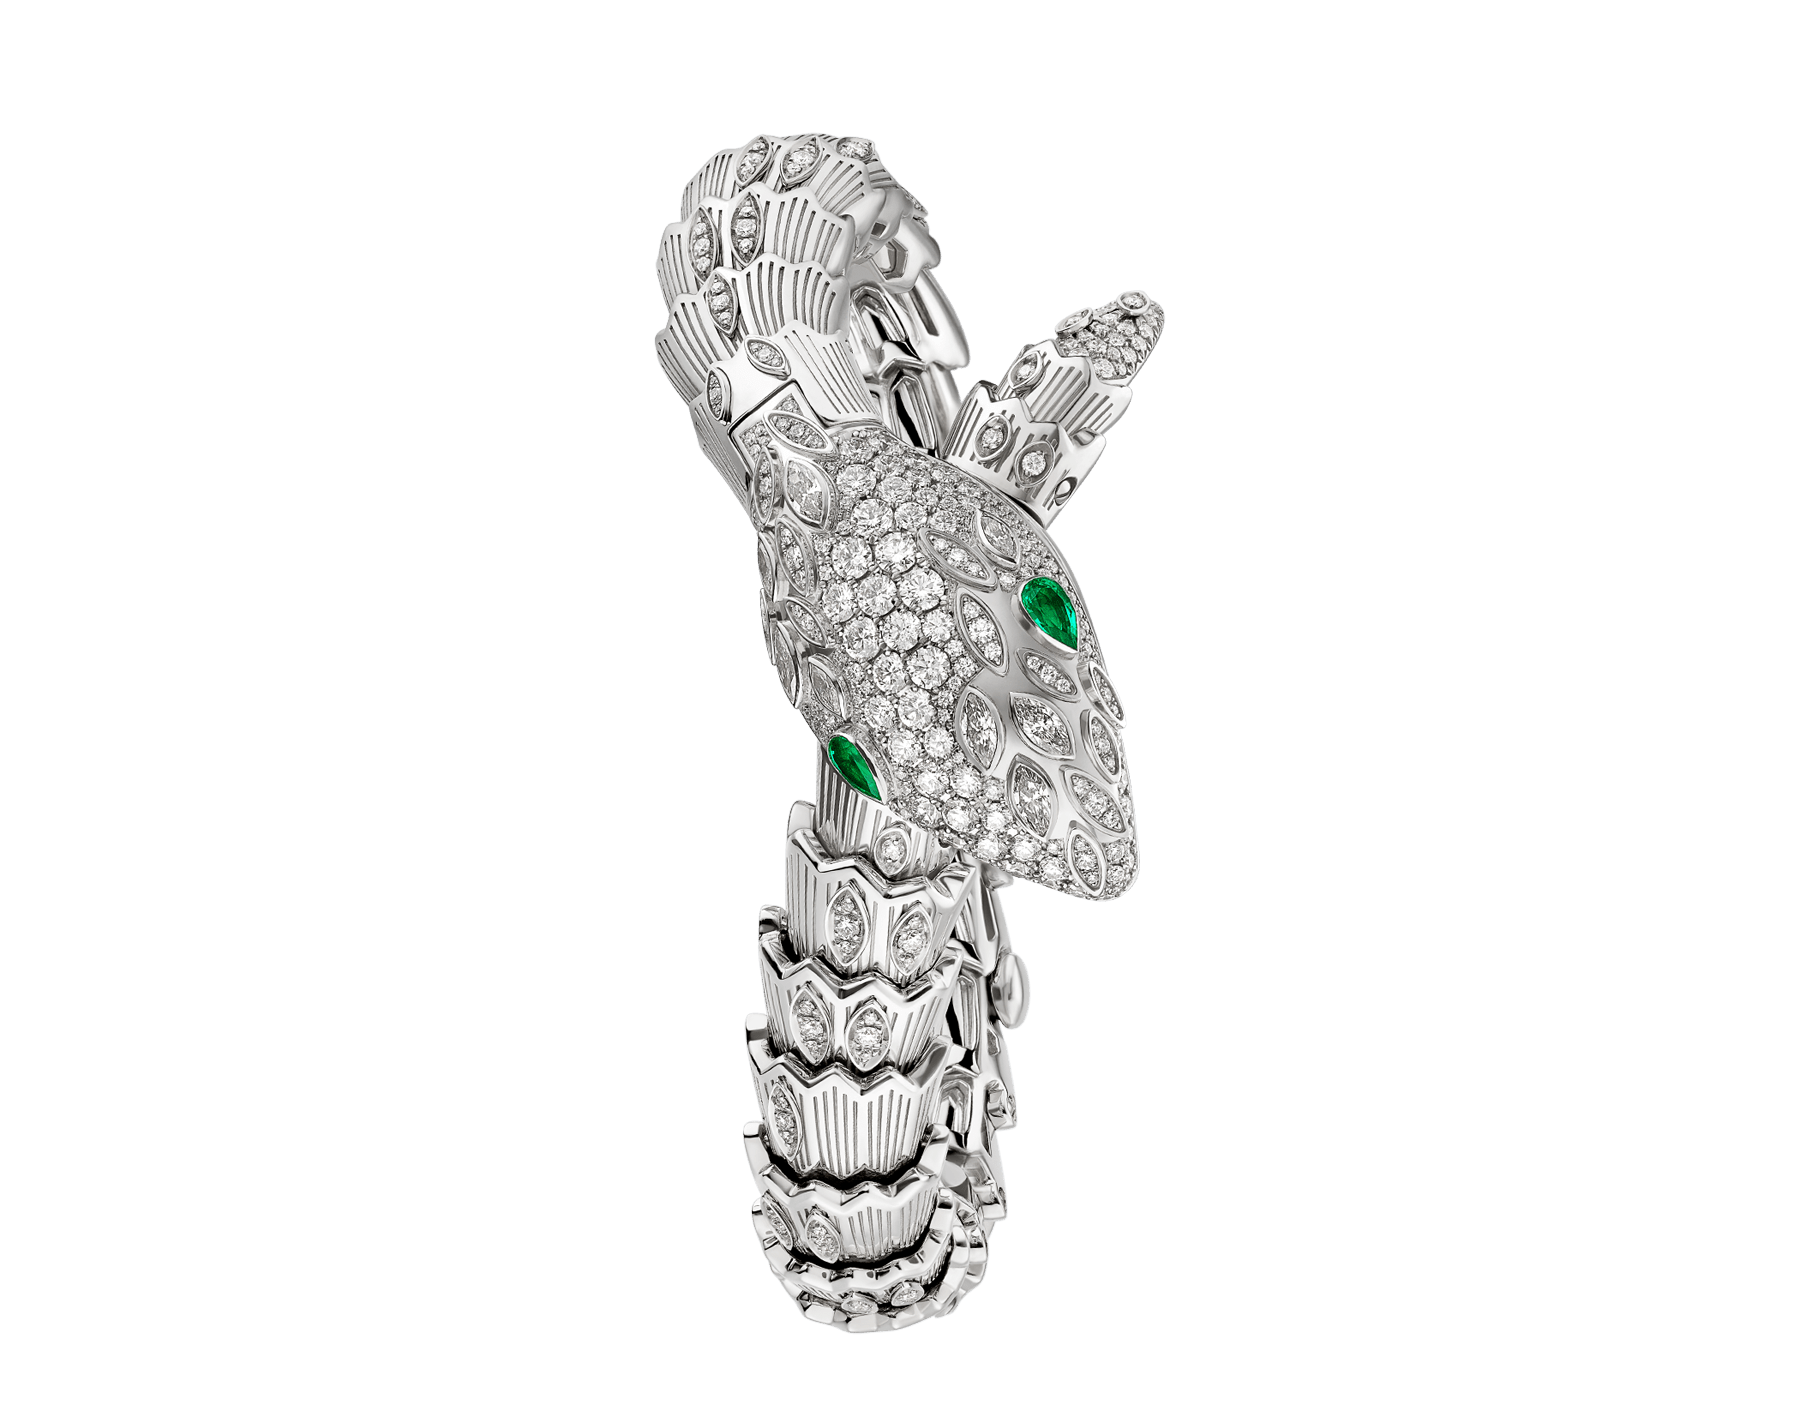 Serpenti Secret Watch with 18 kt white gold case, 18 kt white gold head, dial and single spiral bracelet all set with brilliant cut and marquise cut diamonds, and emerald eyes . 102238 image 1